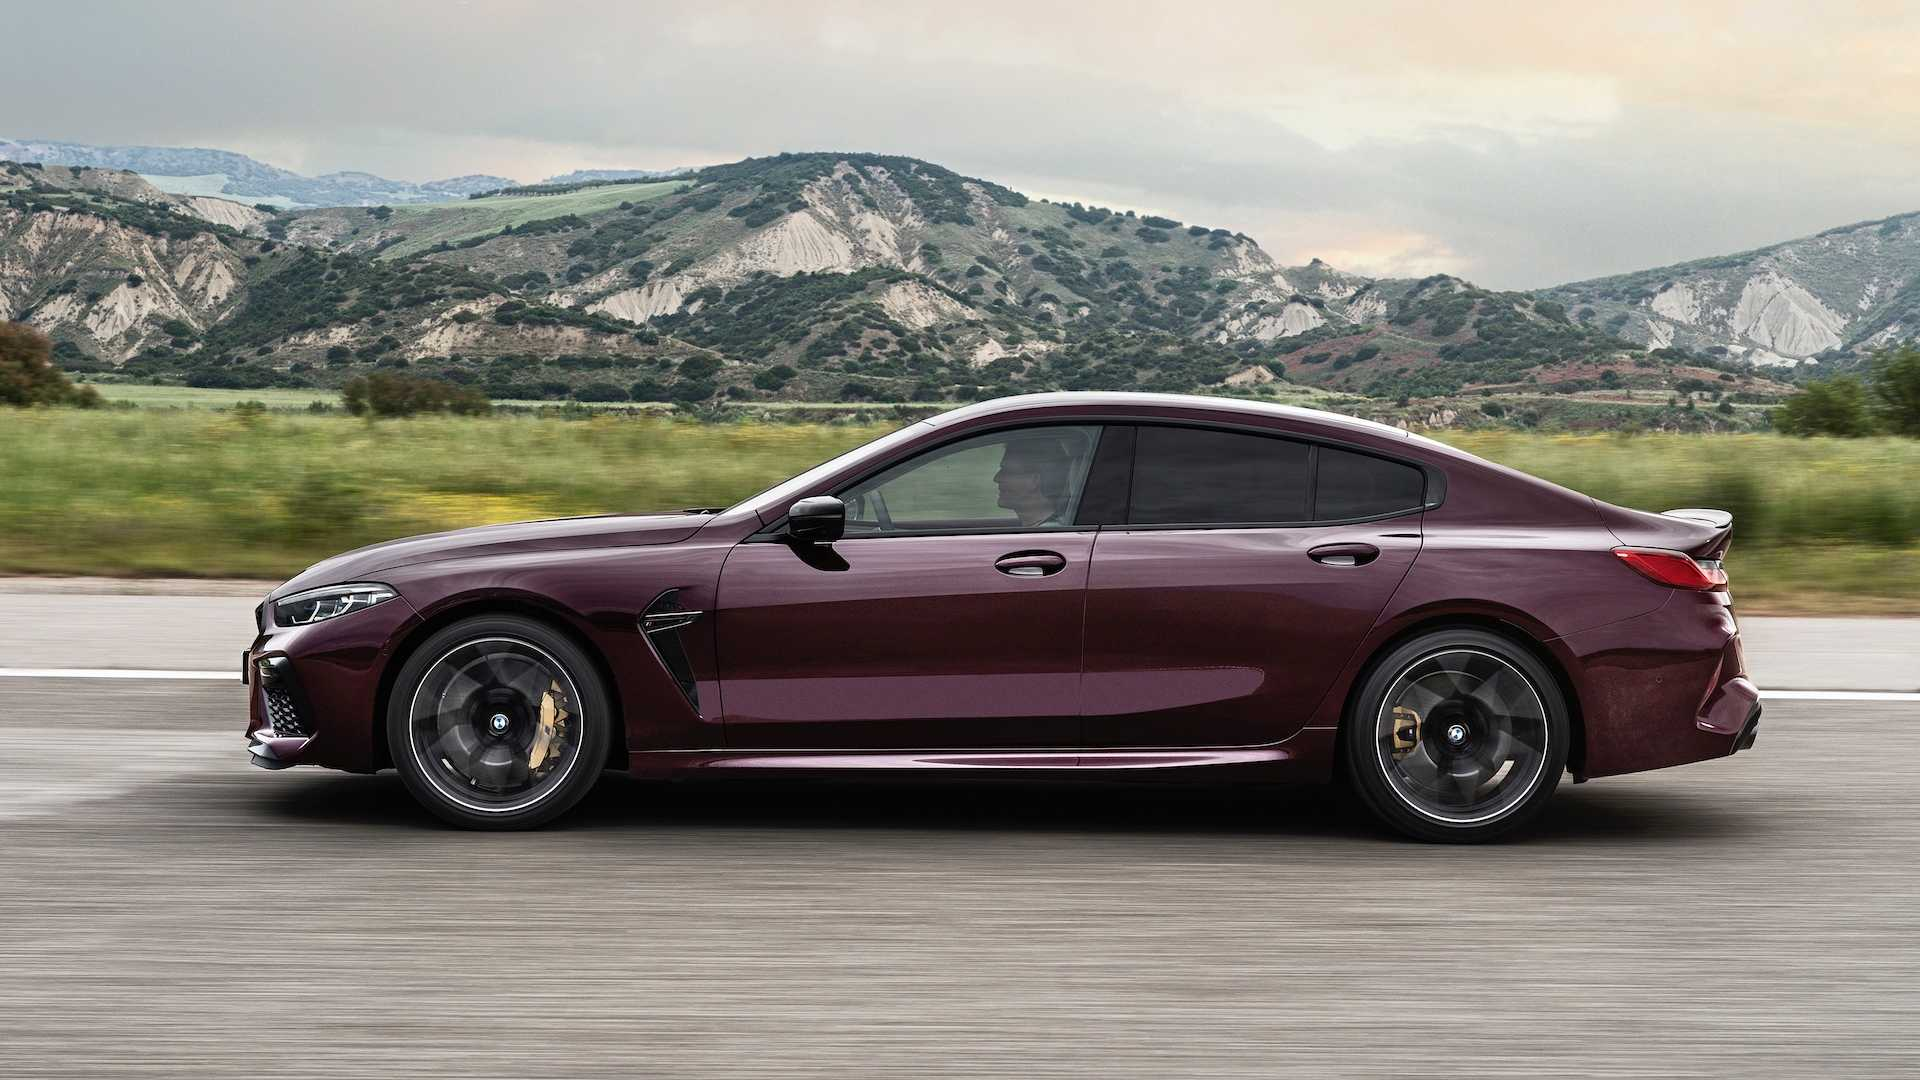 2020-bmw-m8-gran-coupe-competition-17